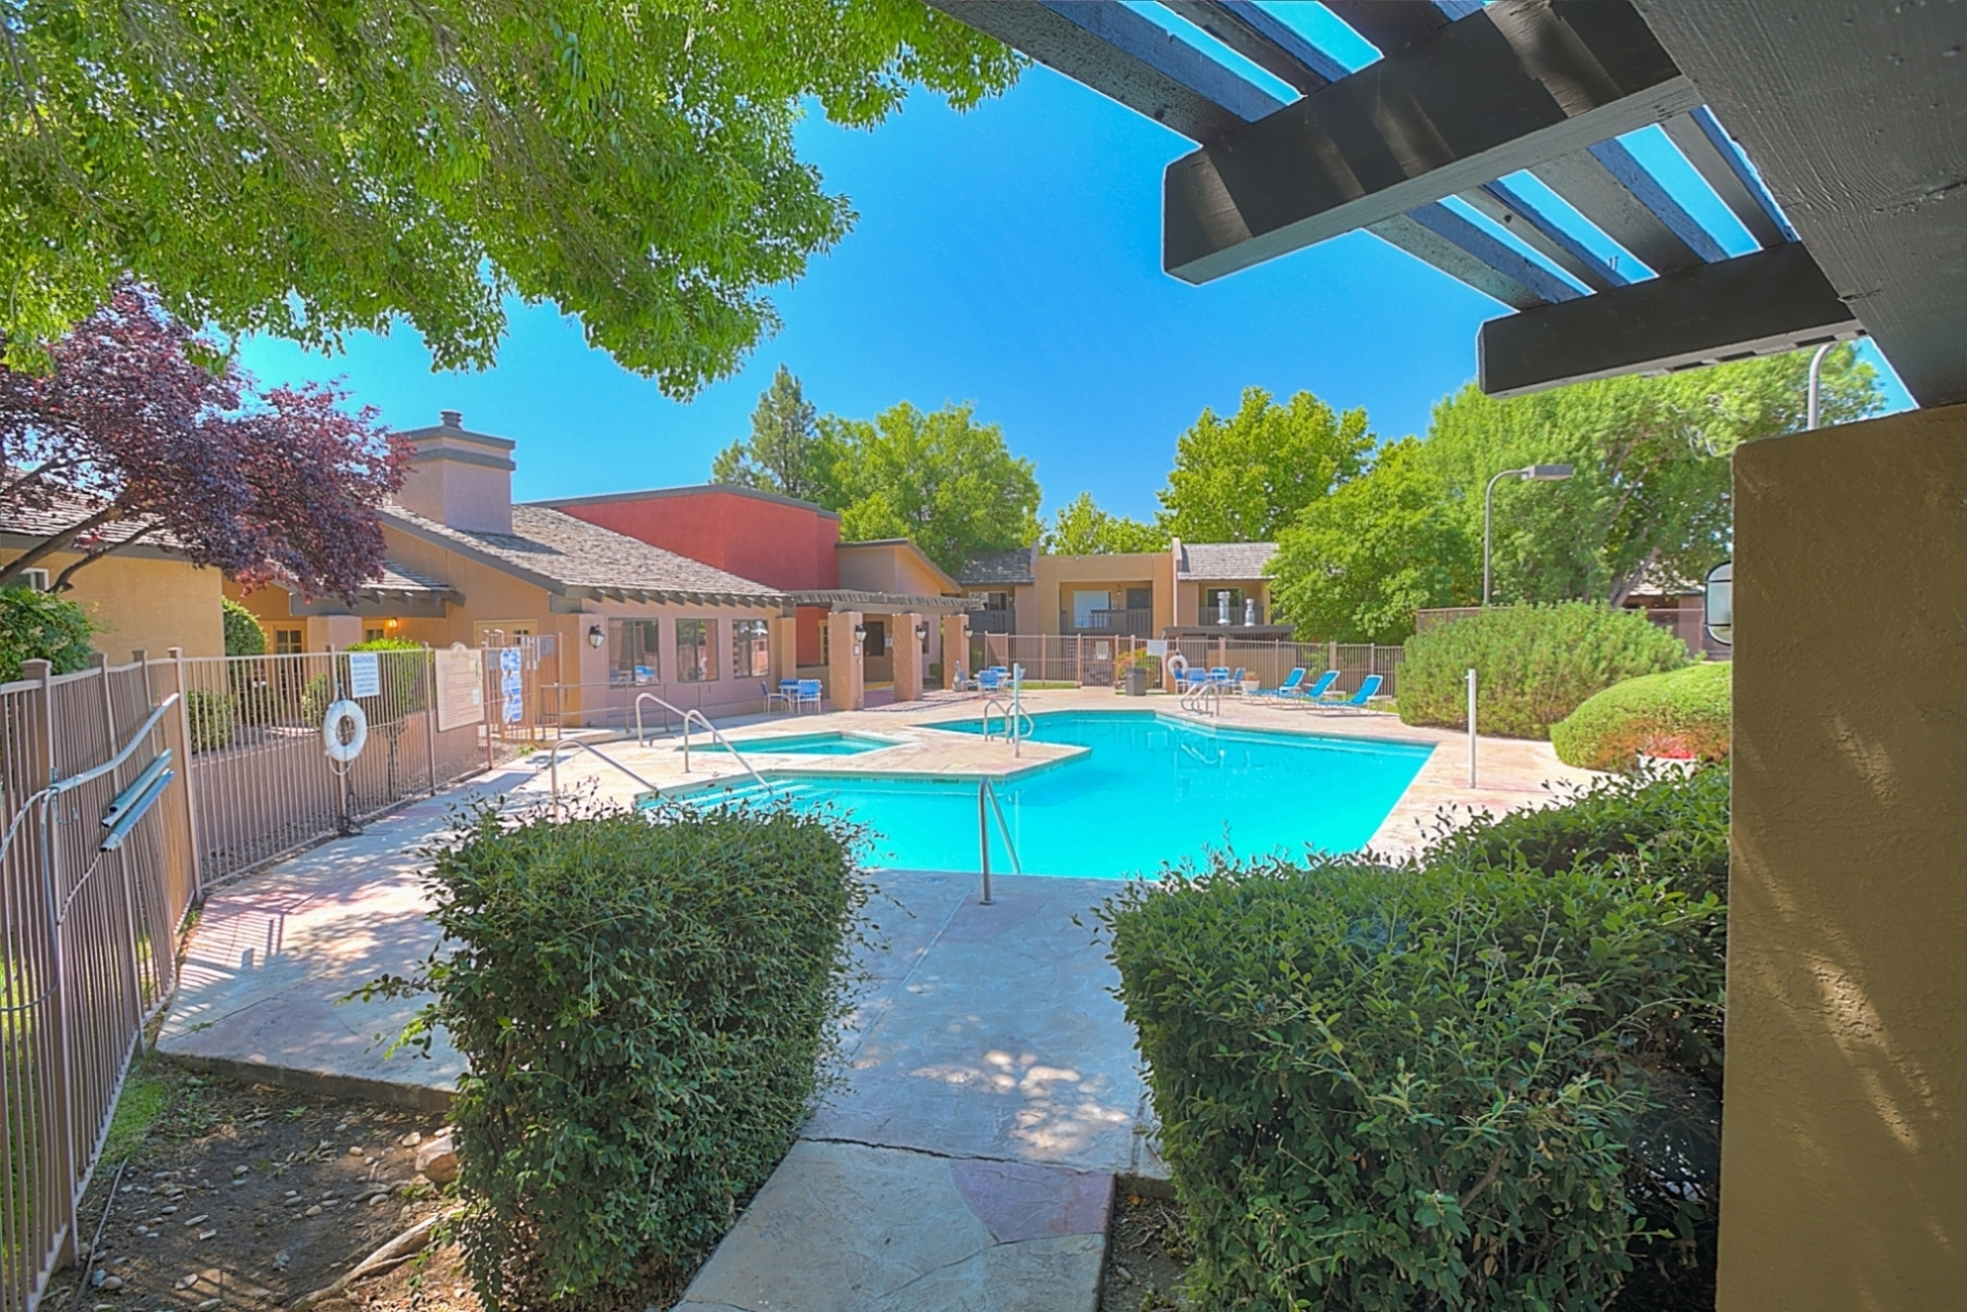 Huge Swimming Pool With Hot Tub at Eagle Pointe Apartments, Albuquerque, New Mexico